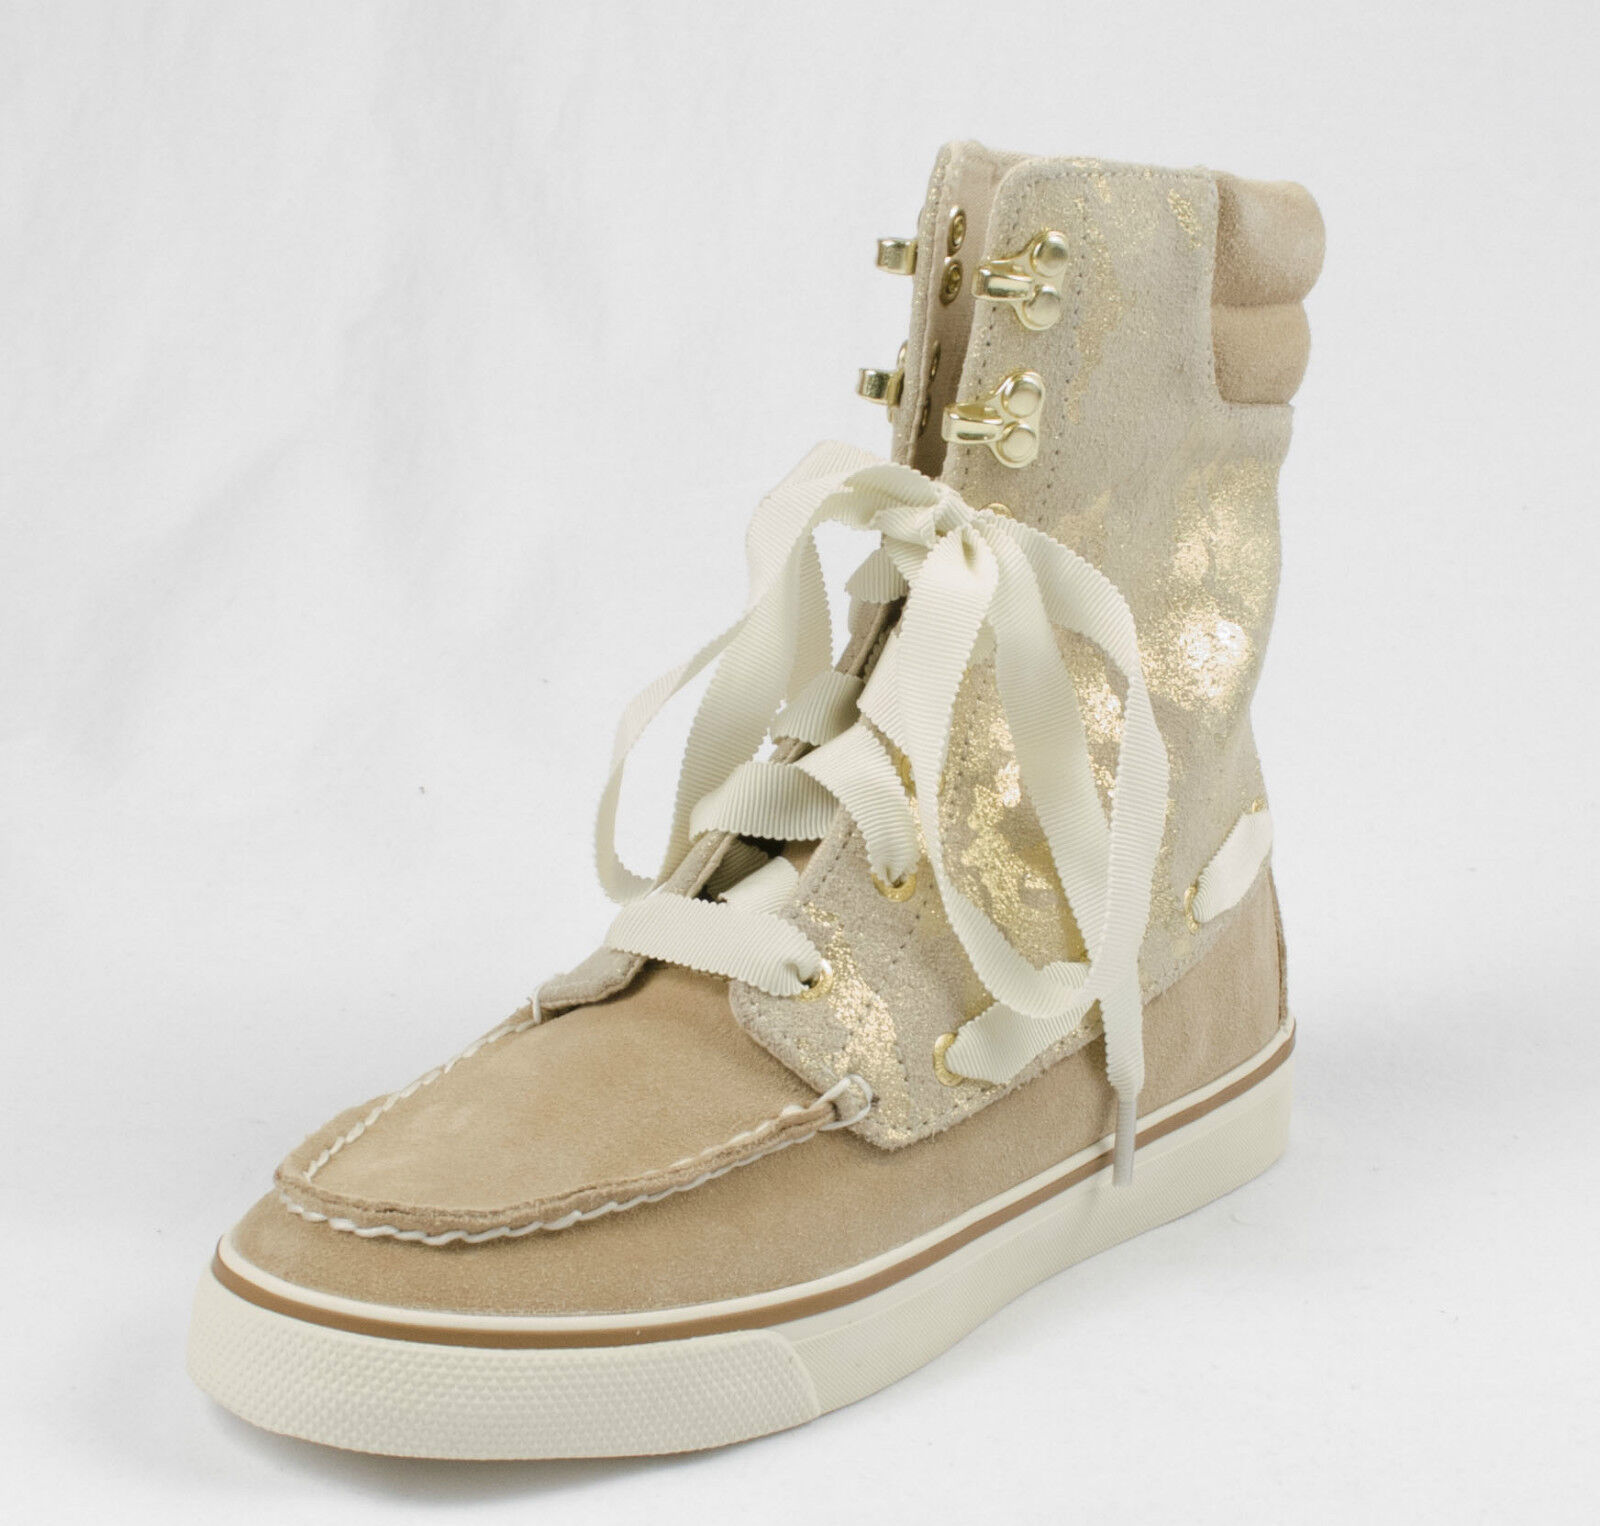 6M SPERRY TOP TOP TOP SIDER ACKLINS SAND gold CAMO WOMENS HIGH TOP SNEAKER BOAT SHOES bcd508